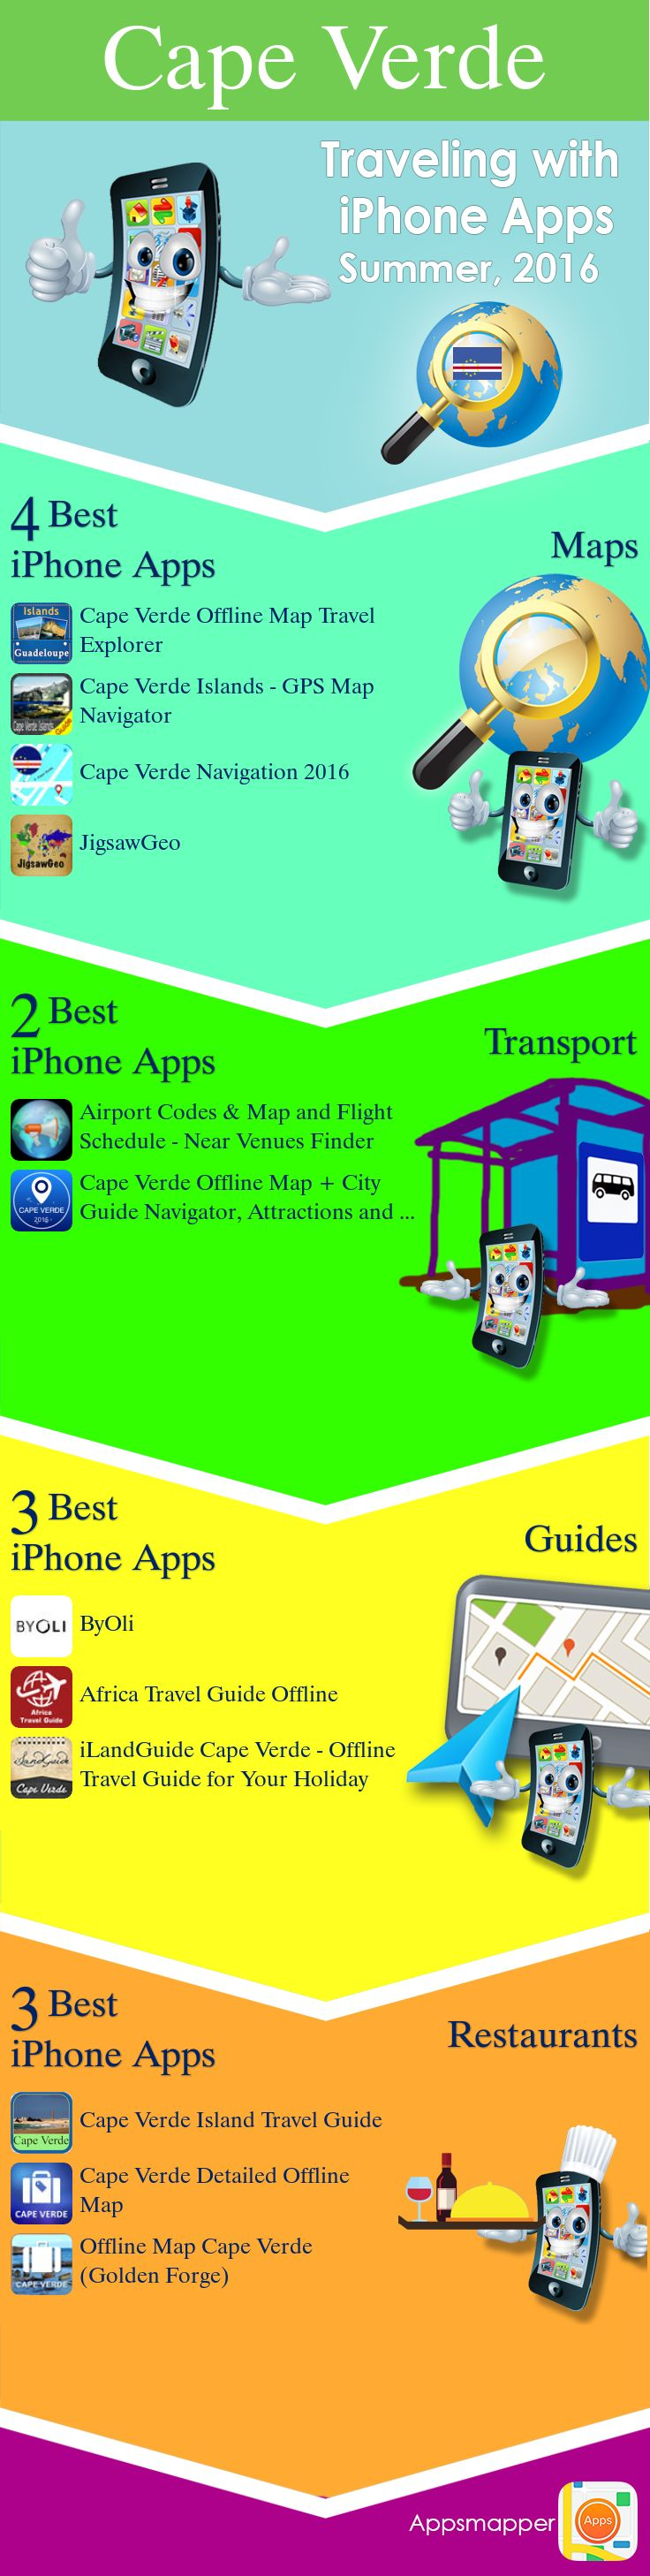 Cape Verde iPhone apps: Travel Guides, Maps, Transportation, Biking, Museums, Parking, Sport and apps for Students.